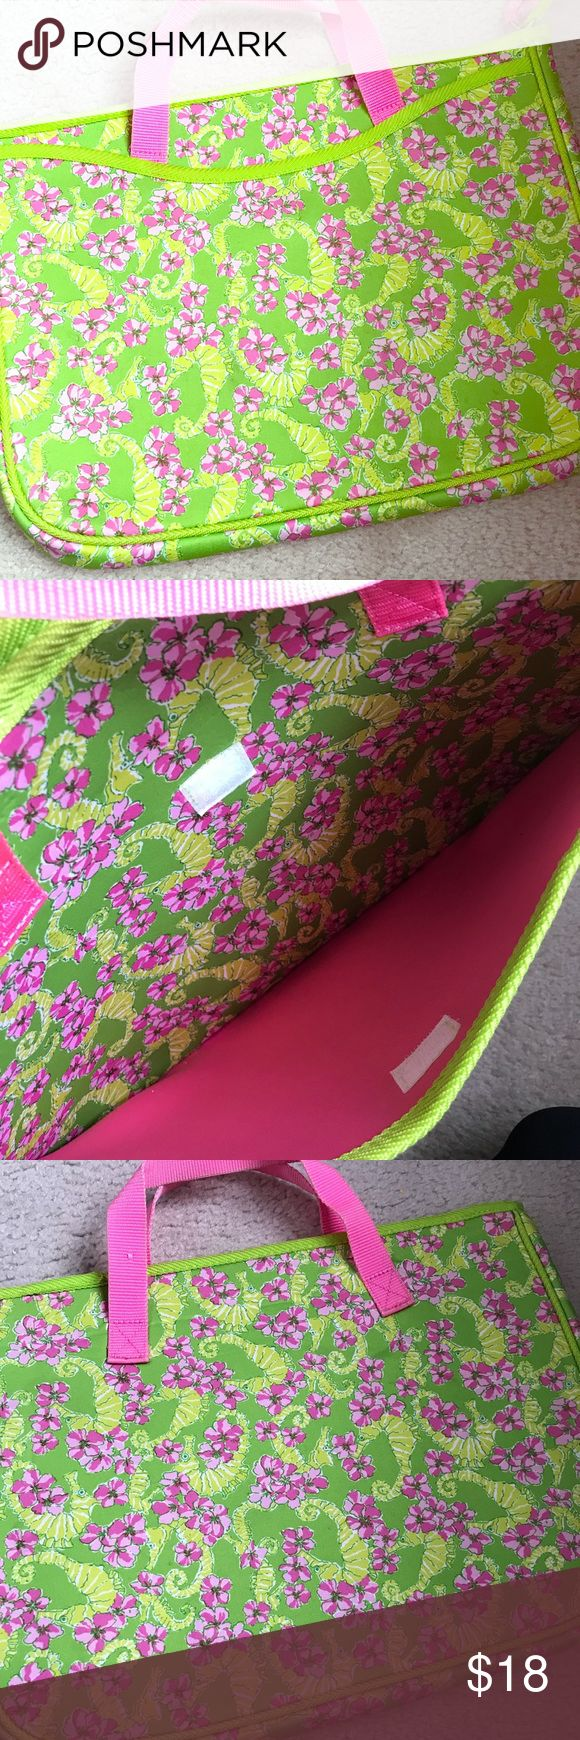 """Lilly Pulitzer Laptop bag Lilly Pulitzer laptop carrying case. Fits up to 15"""" devices with pocket. Little wear shown on handles with picture showing small snag on one handle. This is a reposh item I just ended up not needing or using! Lilly Pulitzer Bags Laptop Bags"""